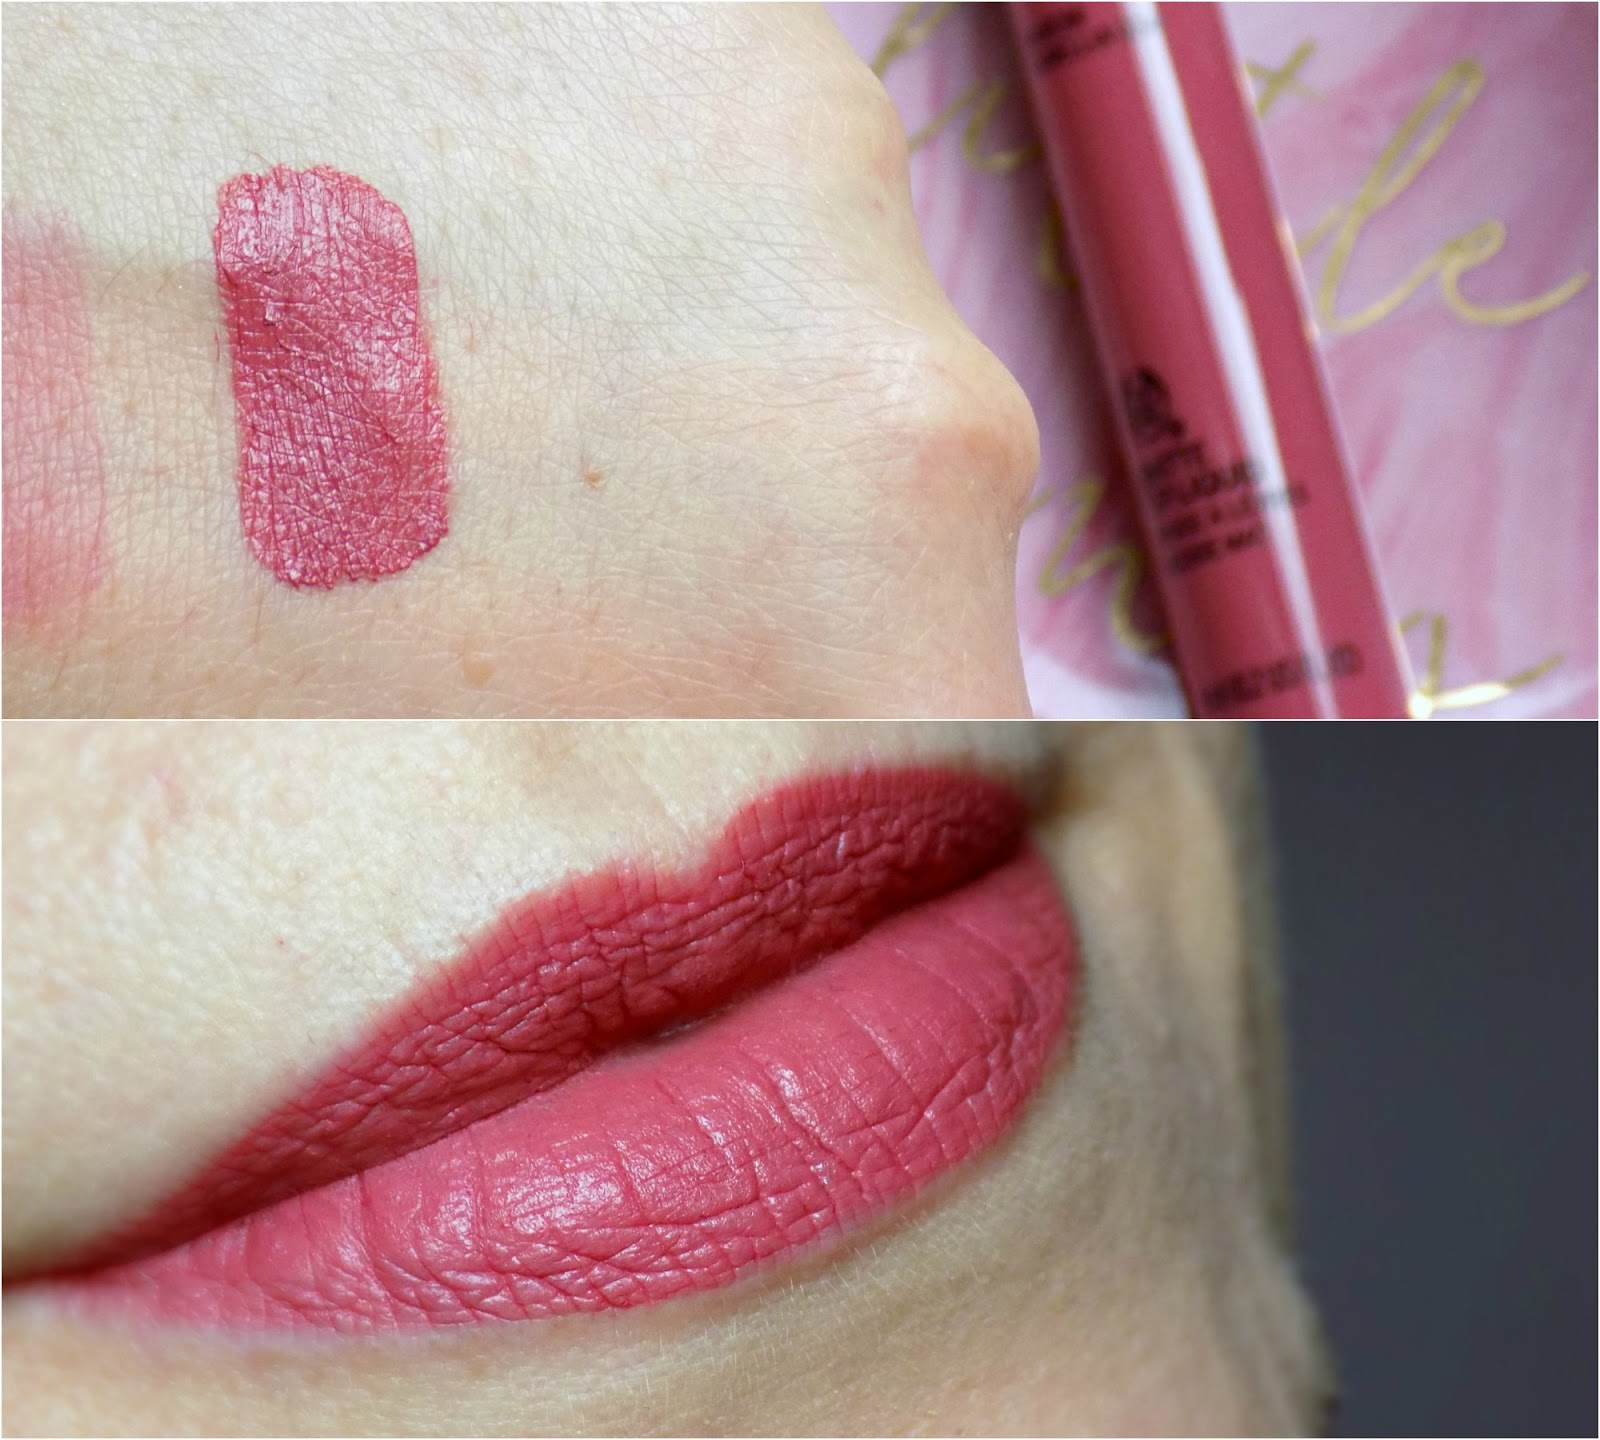 The Body Shop Matte Lip Liquid Lipstick, Nairobi Camellia, swatch